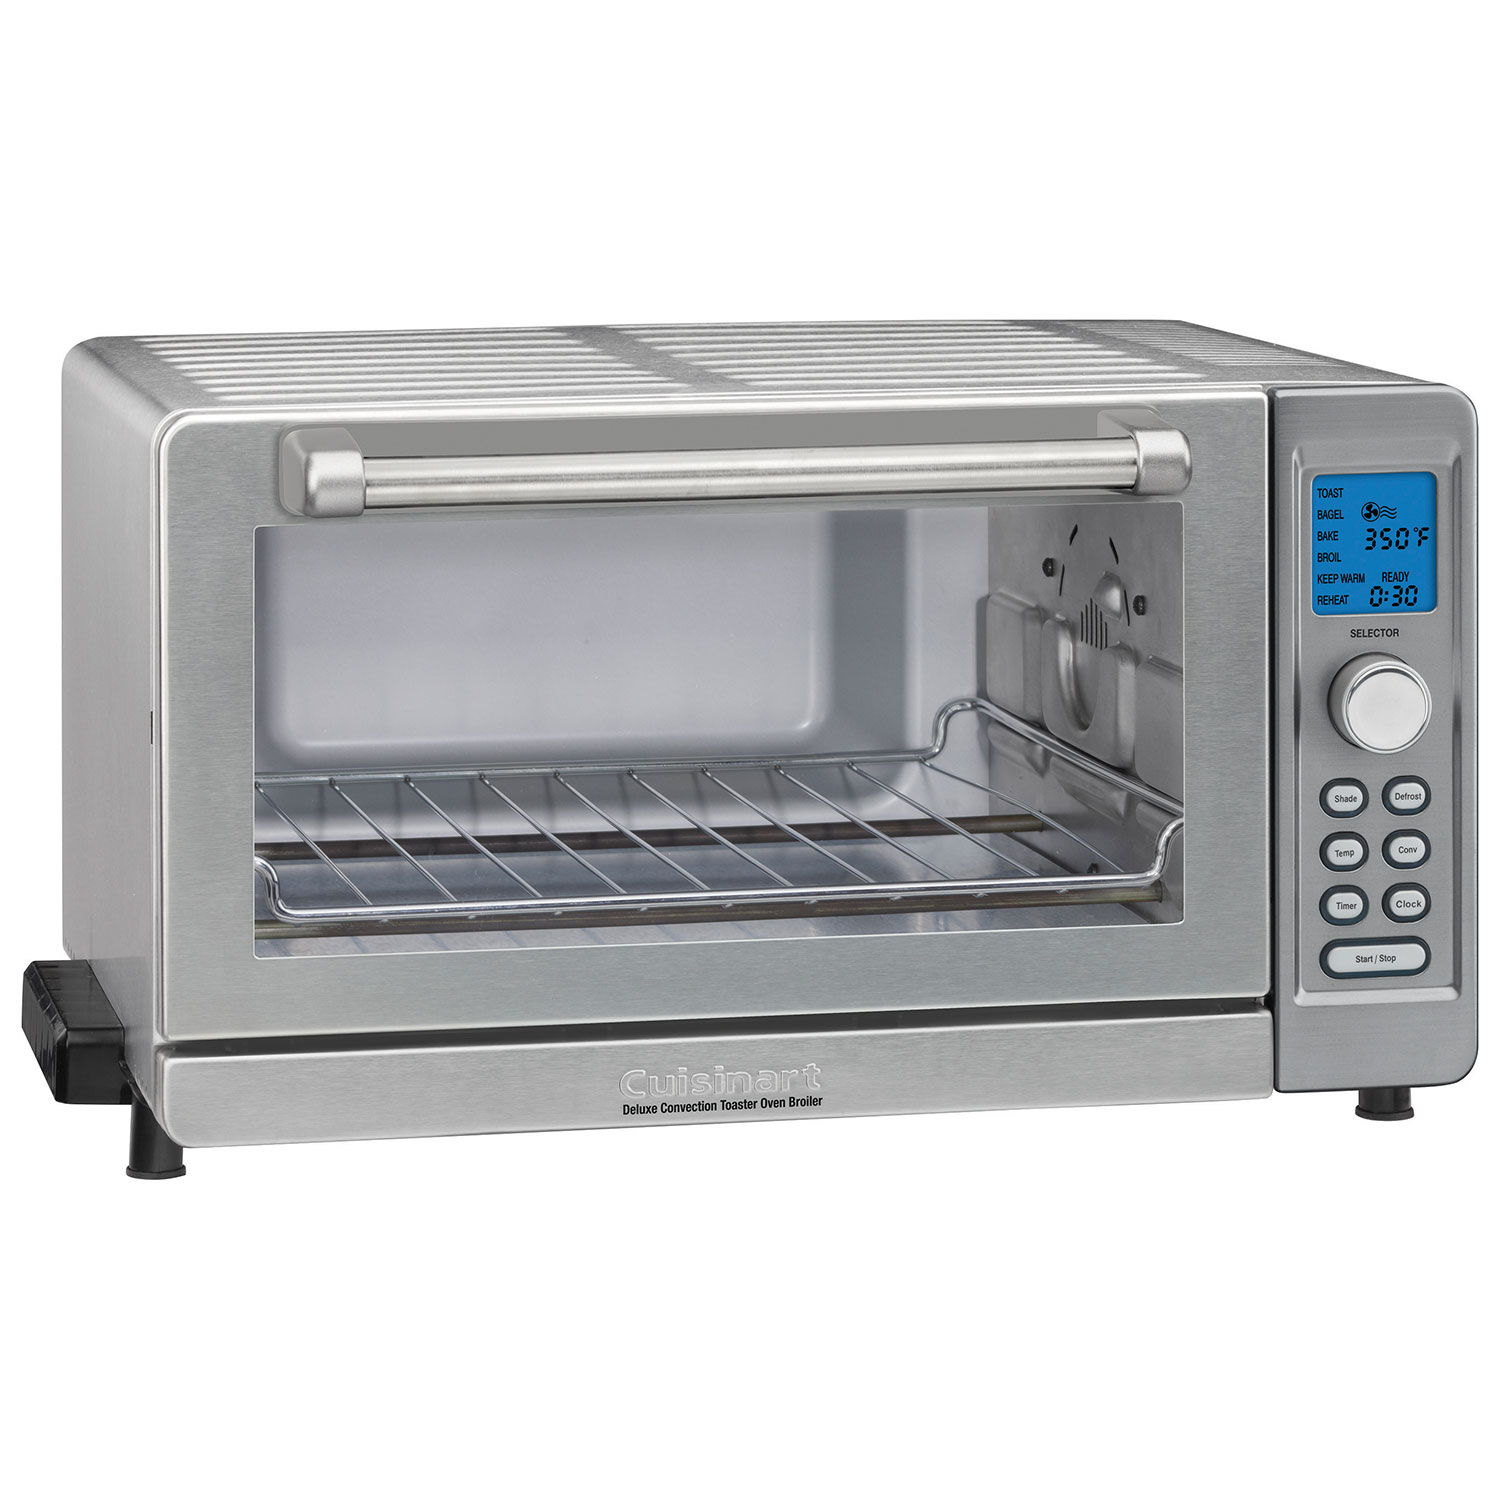 5b237b0da63 Cuisinart Deluxe Convection Toaster Oven - 0.6 Cu. Ft. - Stainless Steel -  Online Only